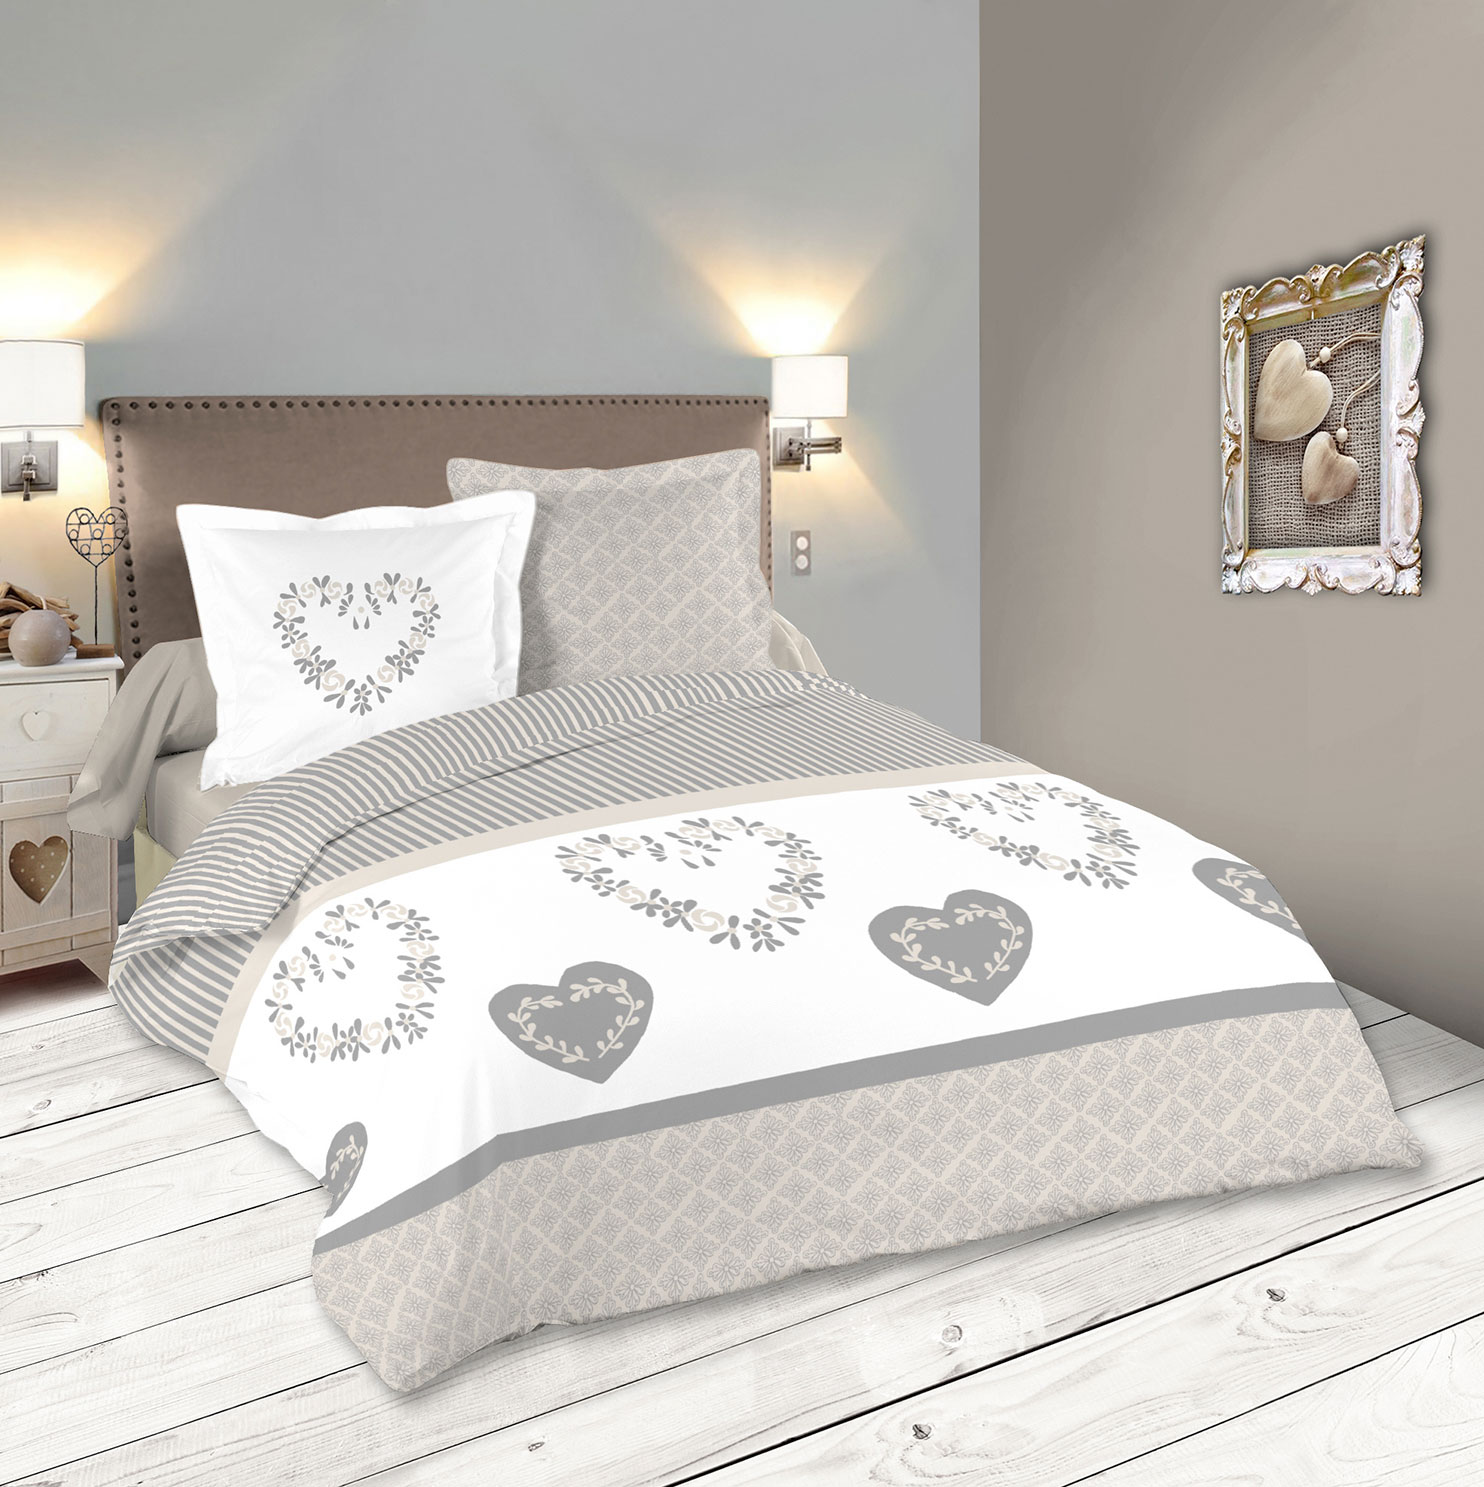 parure de couette chalet chic gris homemaison. Black Bedroom Furniture Sets. Home Design Ideas